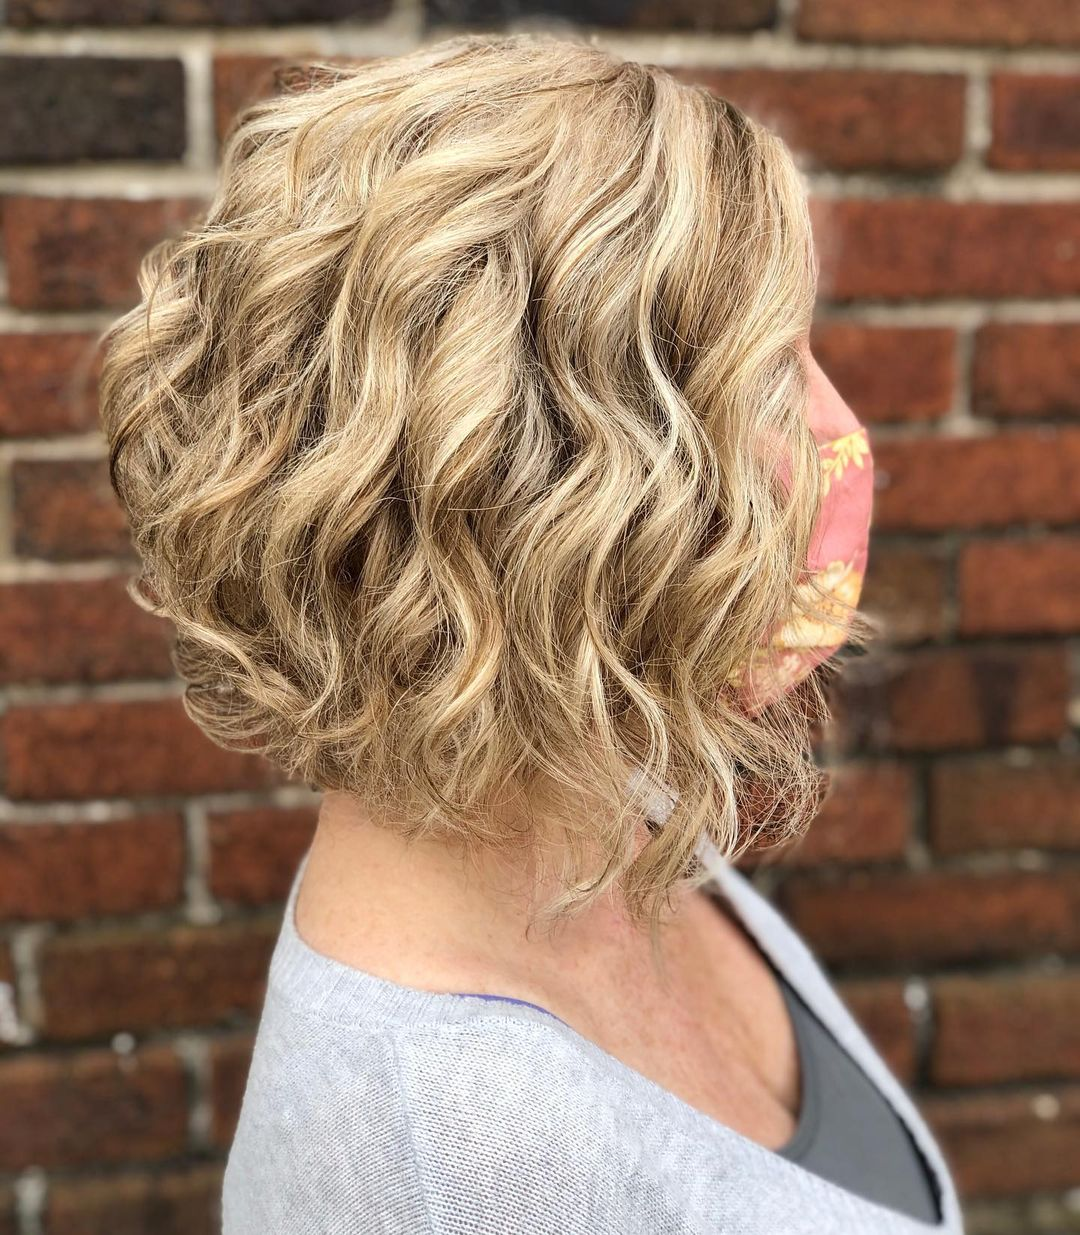 9 Short Curly Hairstyles to Enhance Your Face Shape